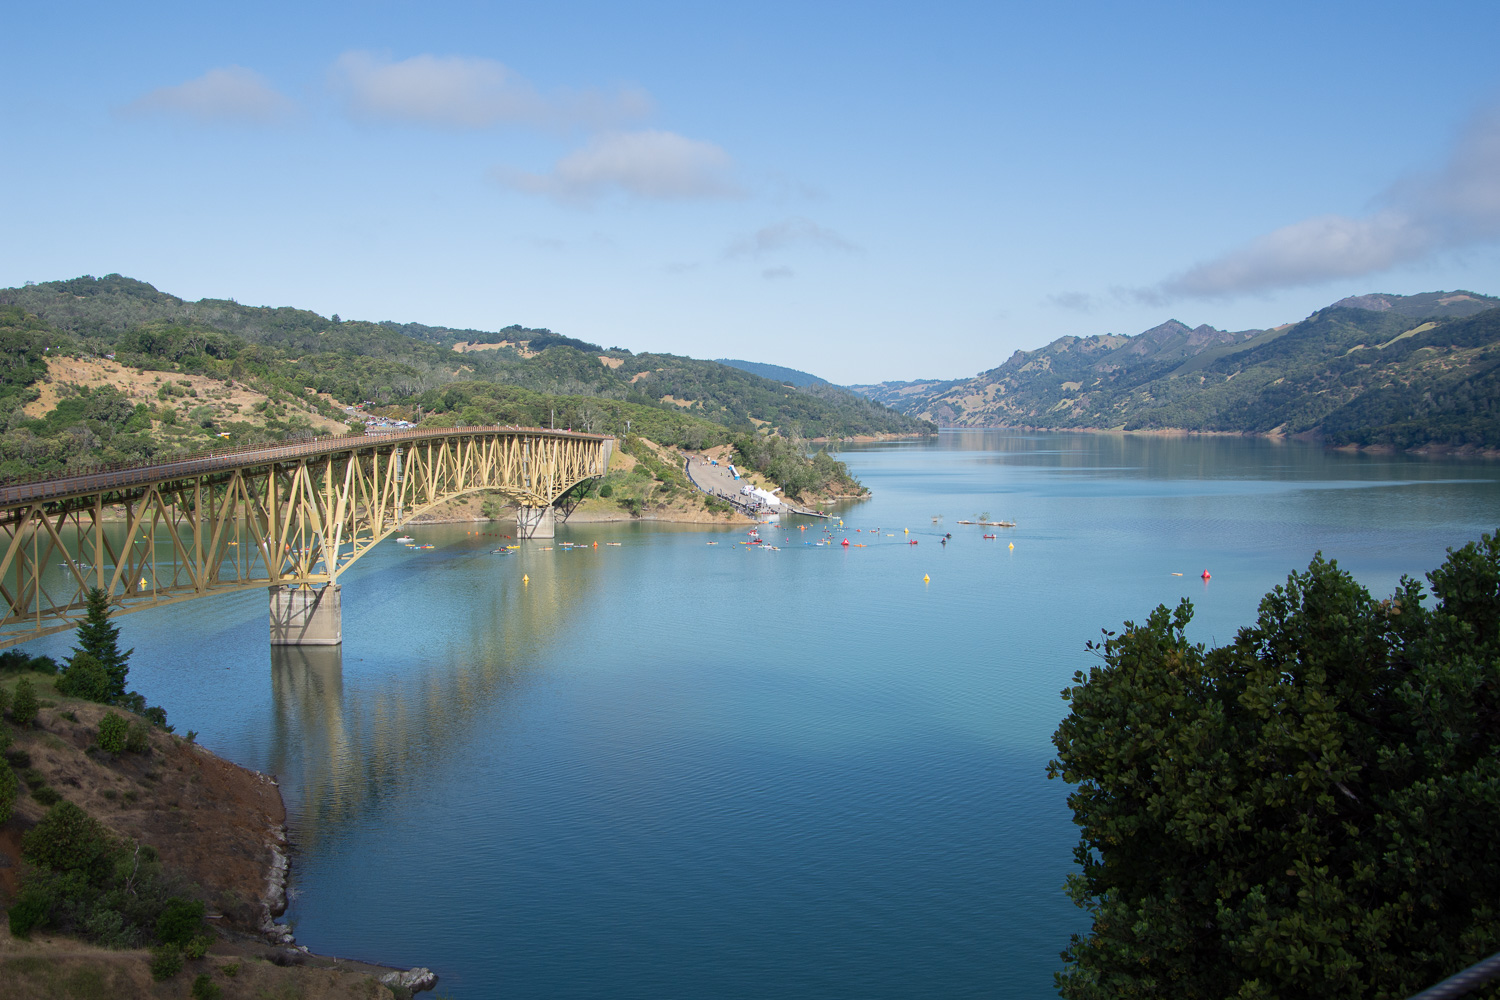 Lake Sonoma after Ironman.